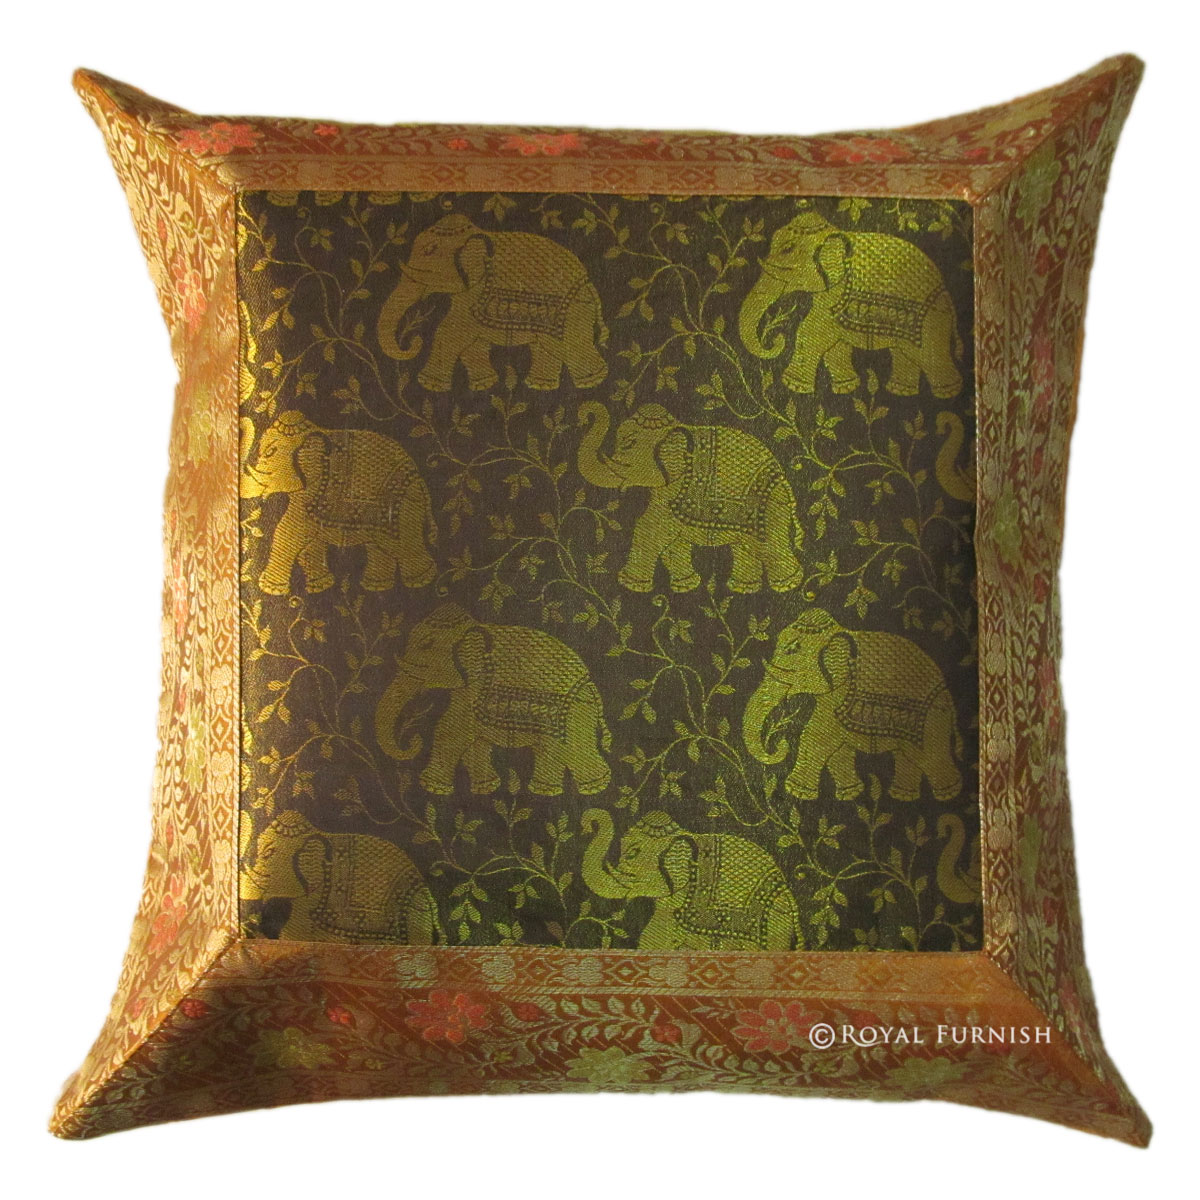 16 gold decorative elephant animal silk brocade throw pillow case. Black Bedroom Furniture Sets. Home Design Ideas